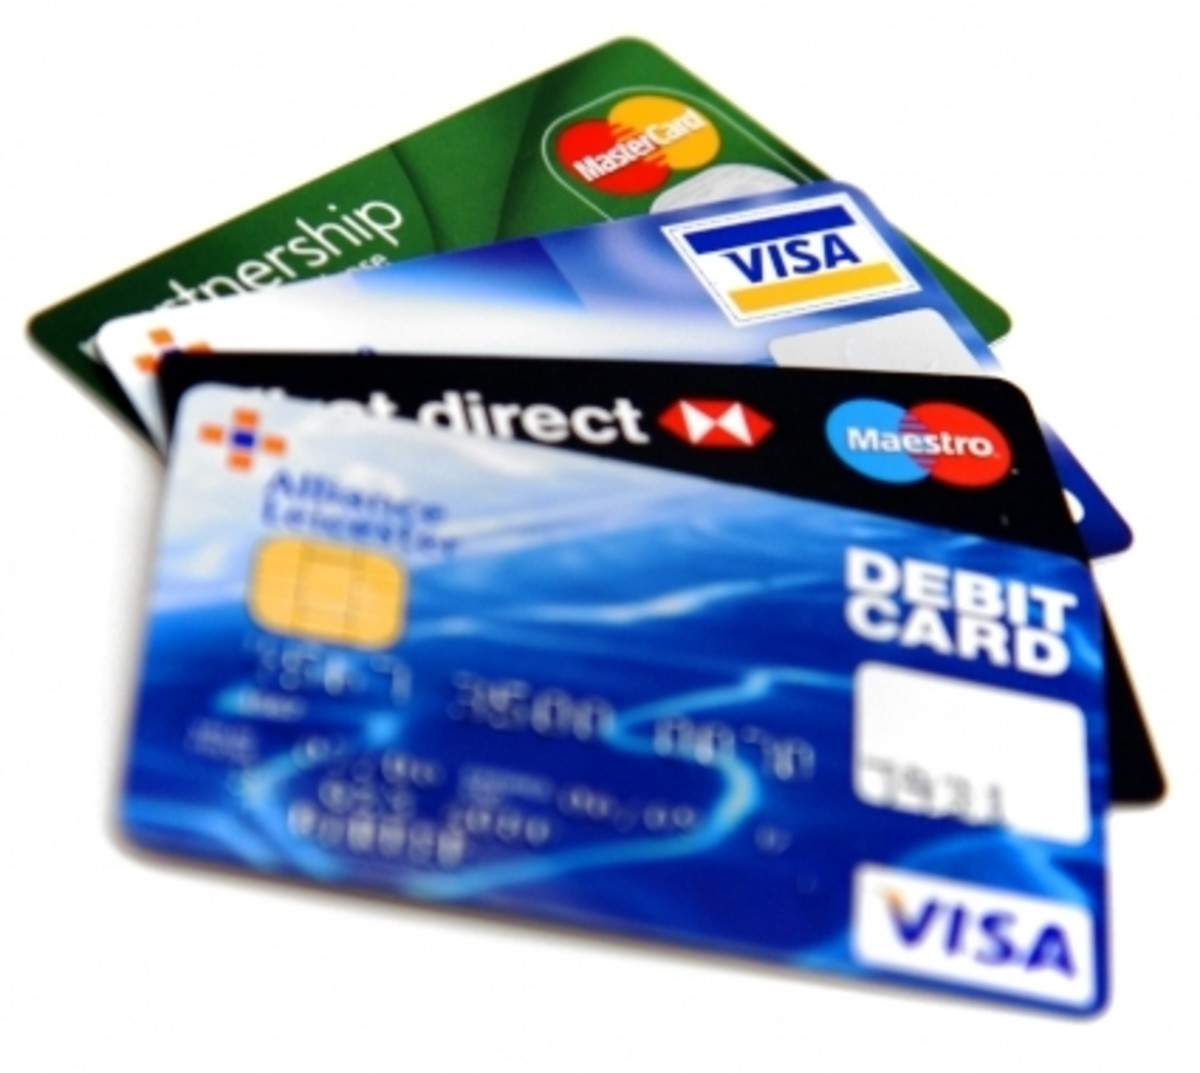 Every credit card you own contributes something to your credit score. Even inactive cards.